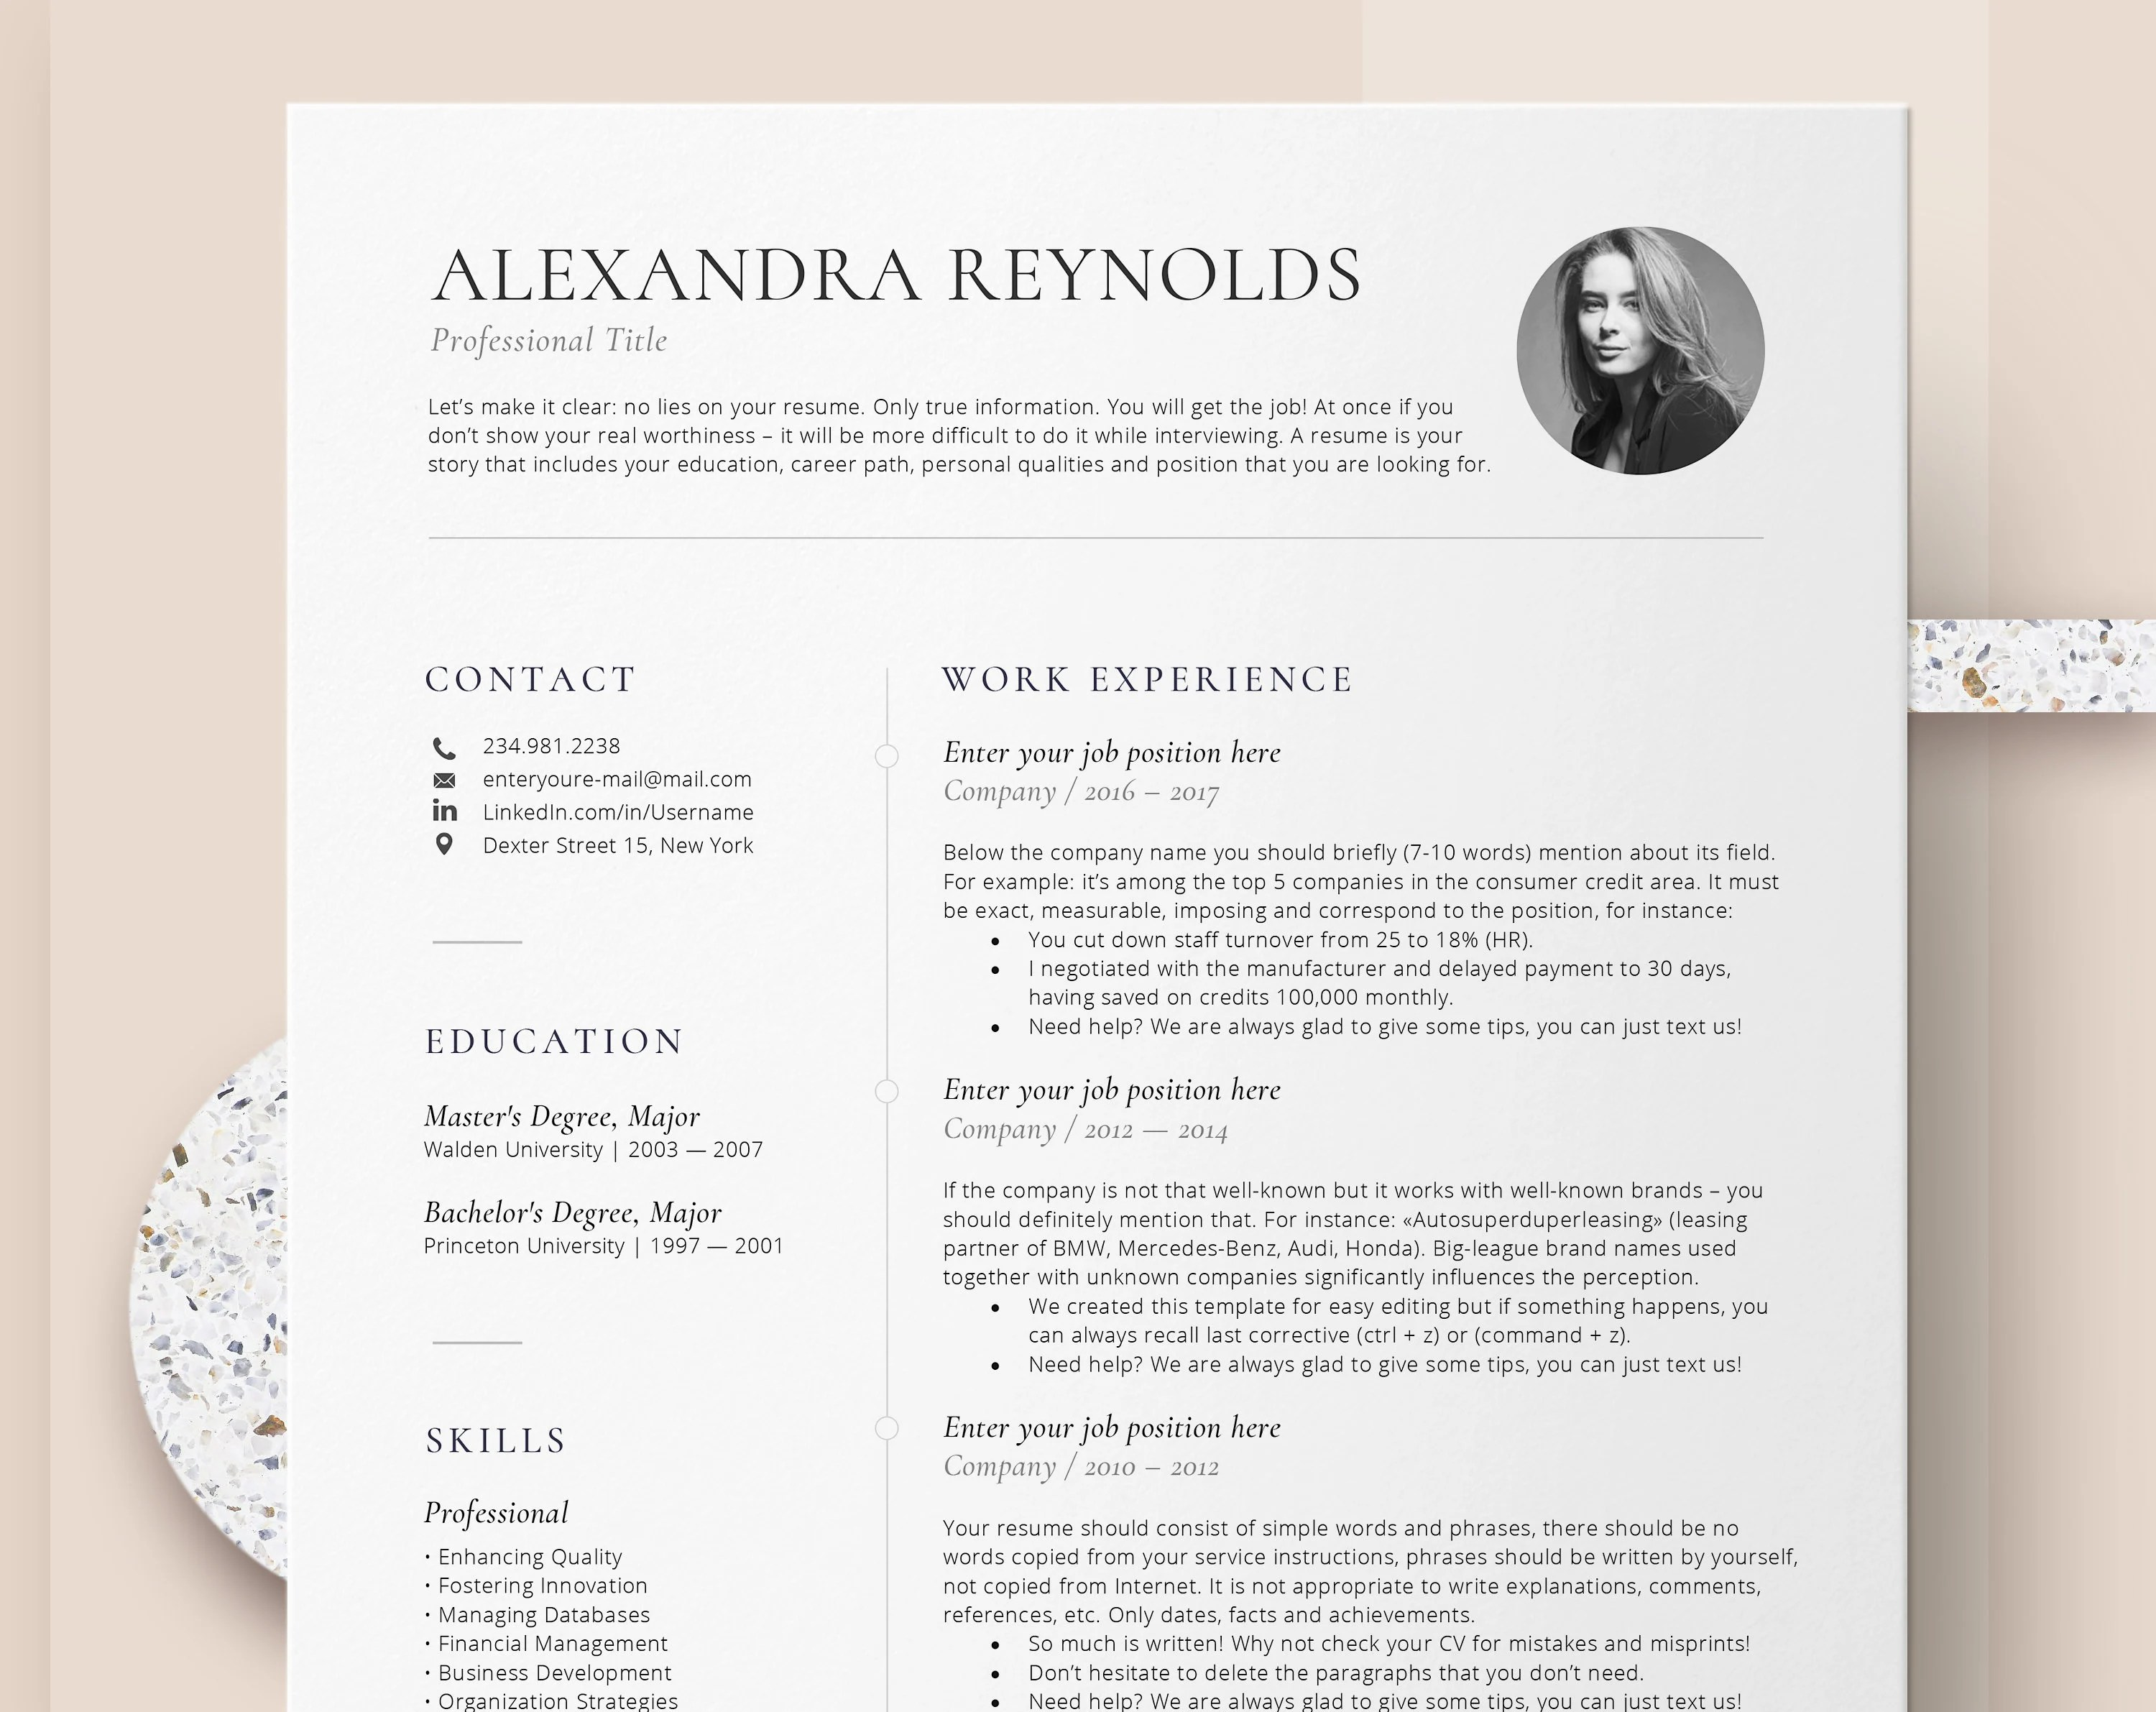 How To Make A Resume On A Mac Resume Template For Mac Cv Template With Photo Professional Resume Templates Word Mac Pages Creative Resume Template Instant Download